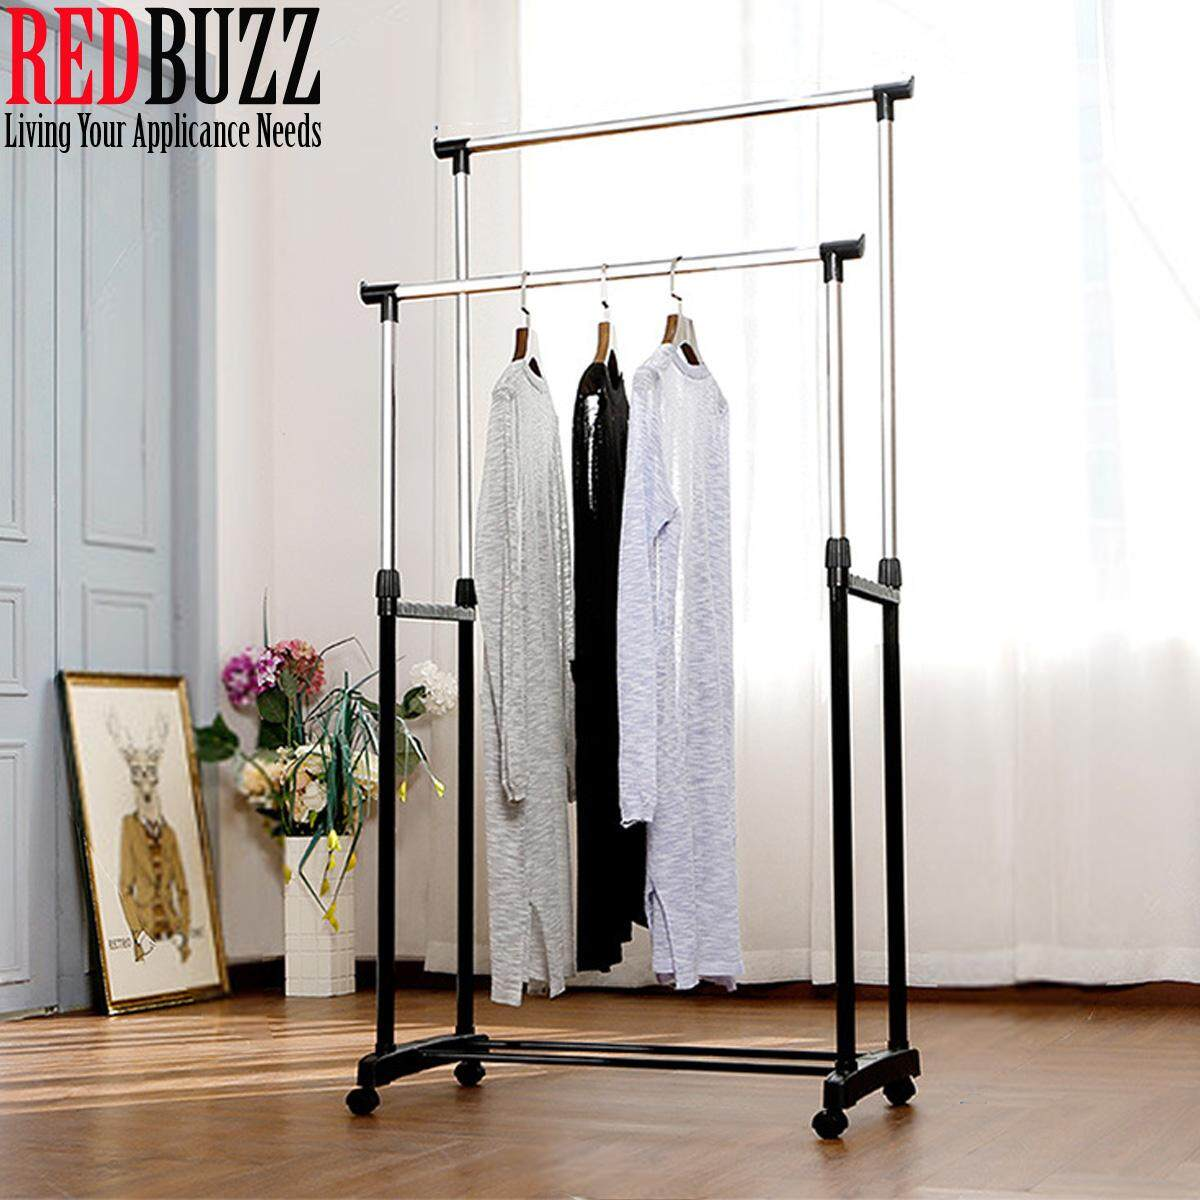 REDBUZZ Double Pole Adjustable Stainless Steel Cloth Hanger And Organizer Drying Rack Clothes Rack